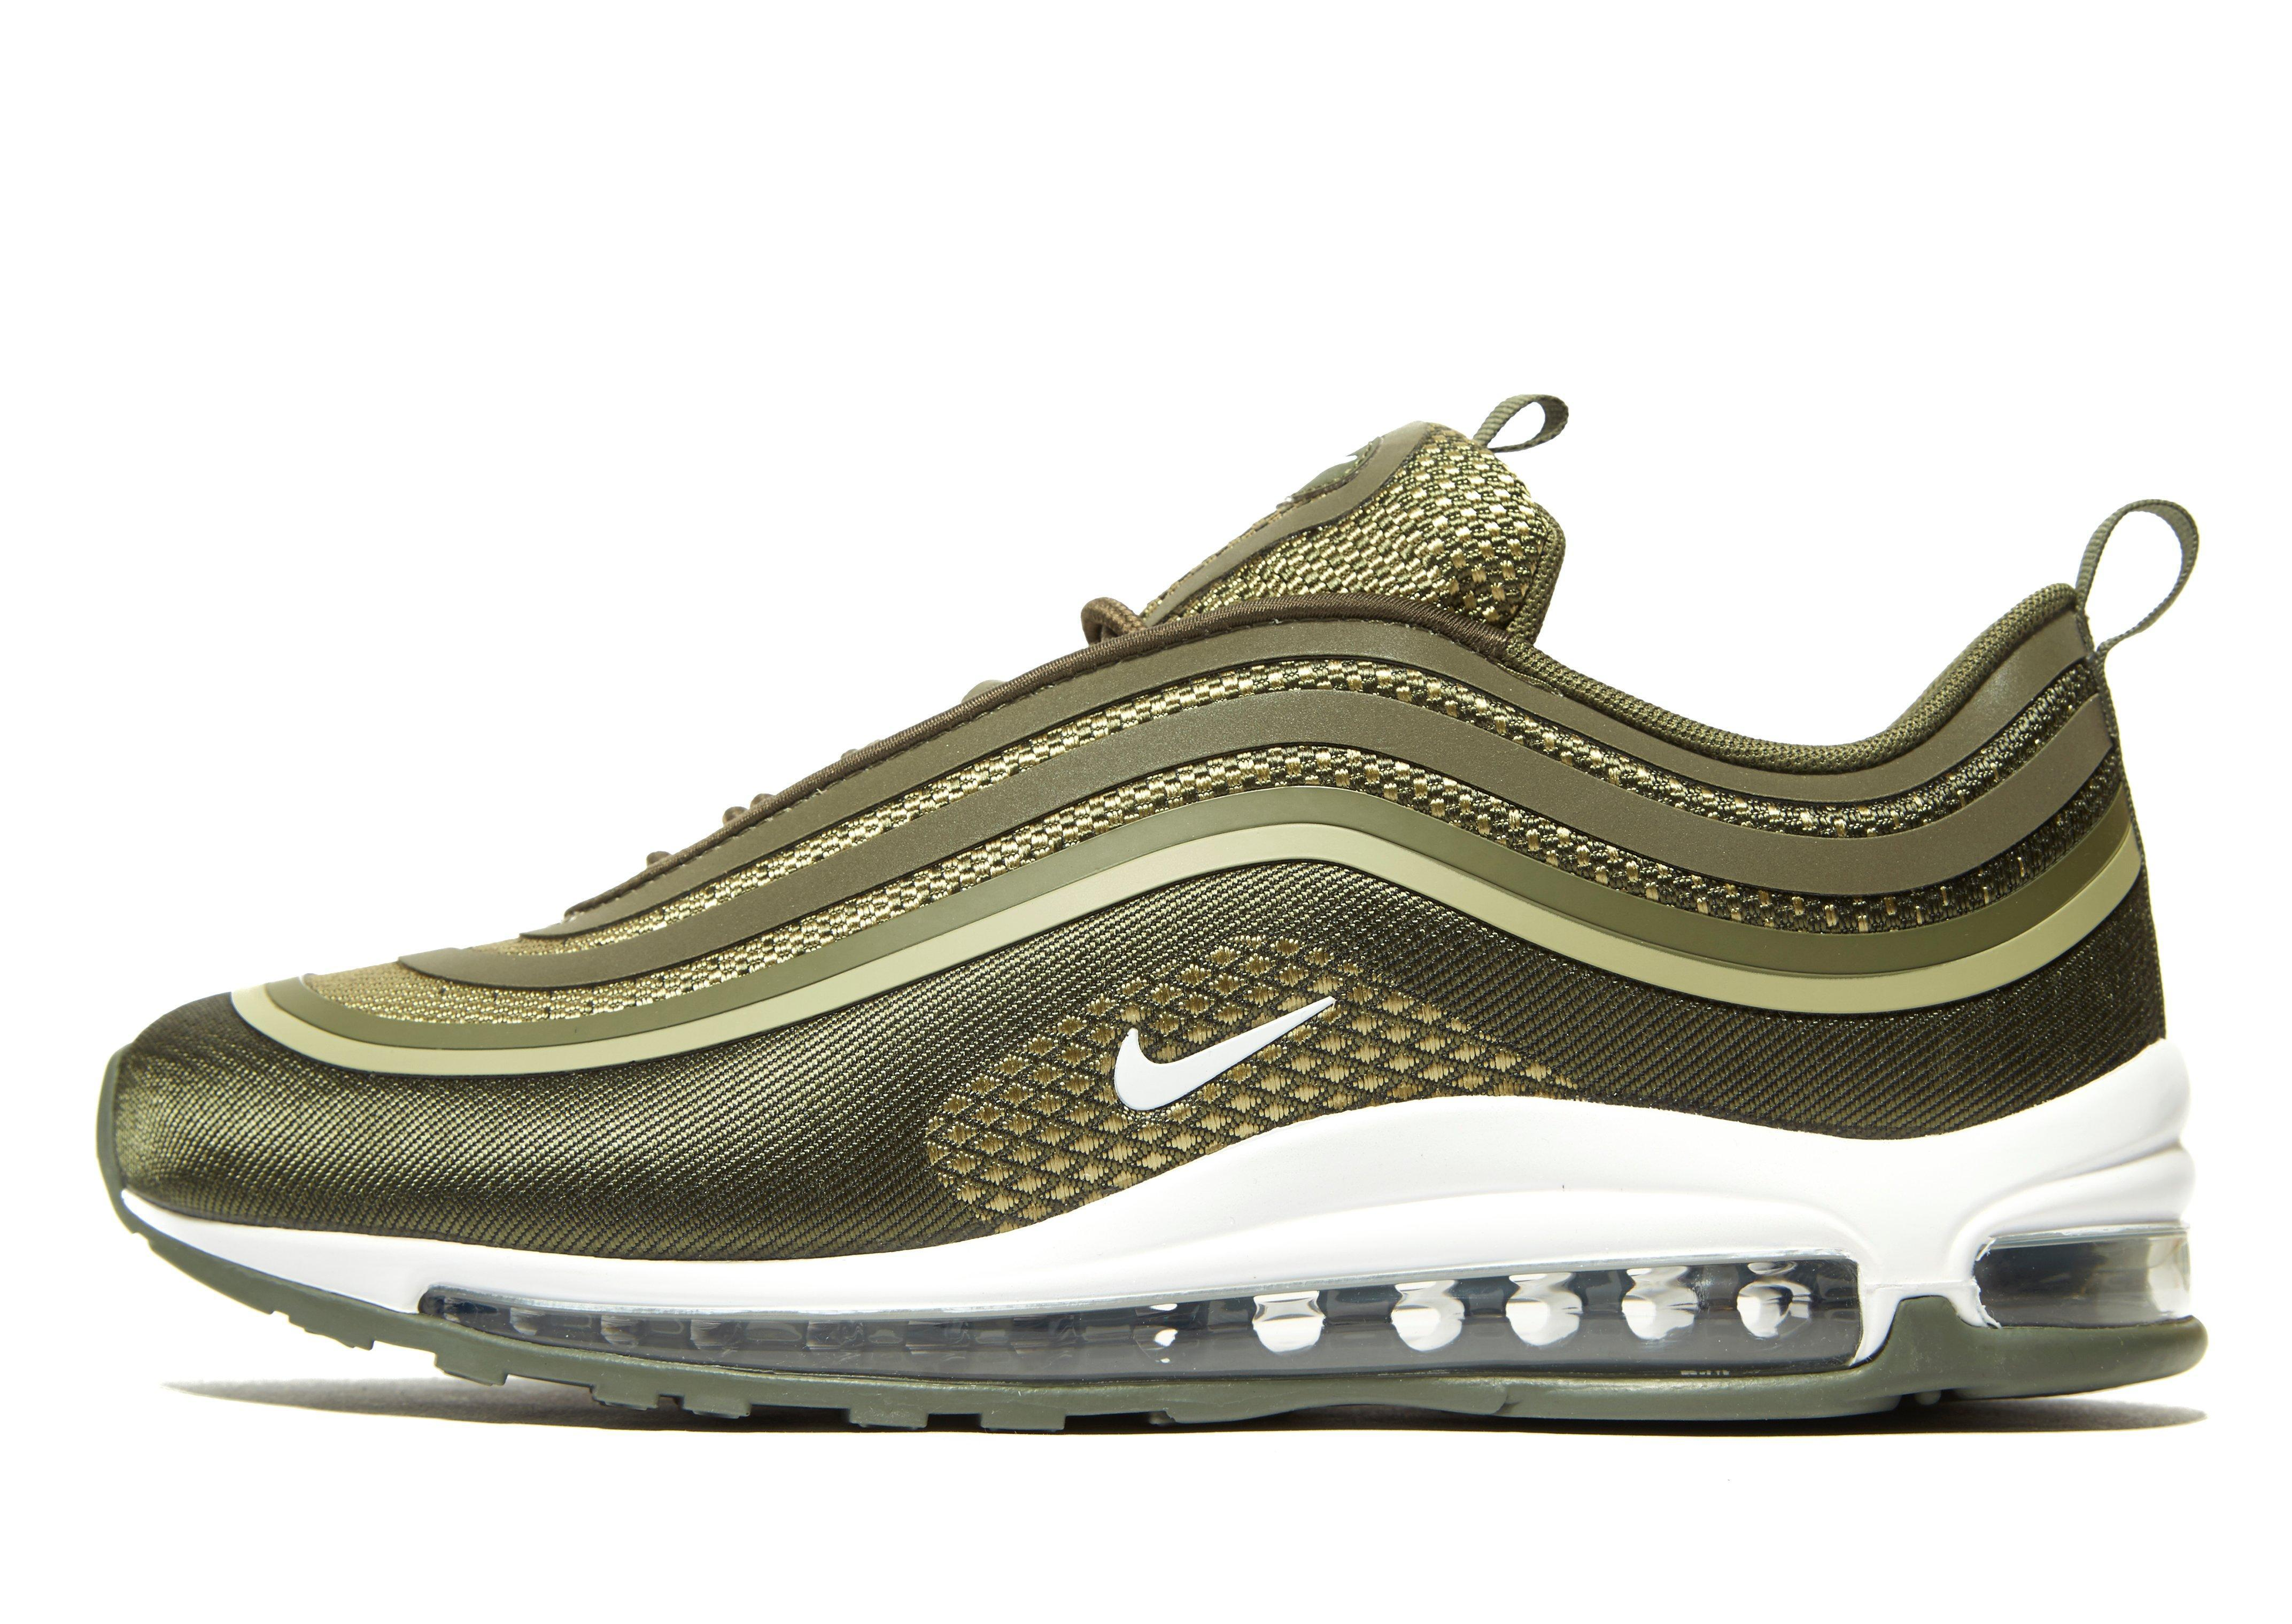 lyst nike air max 97 ultra in green for men. Black Bedroom Furniture Sets. Home Design Ideas